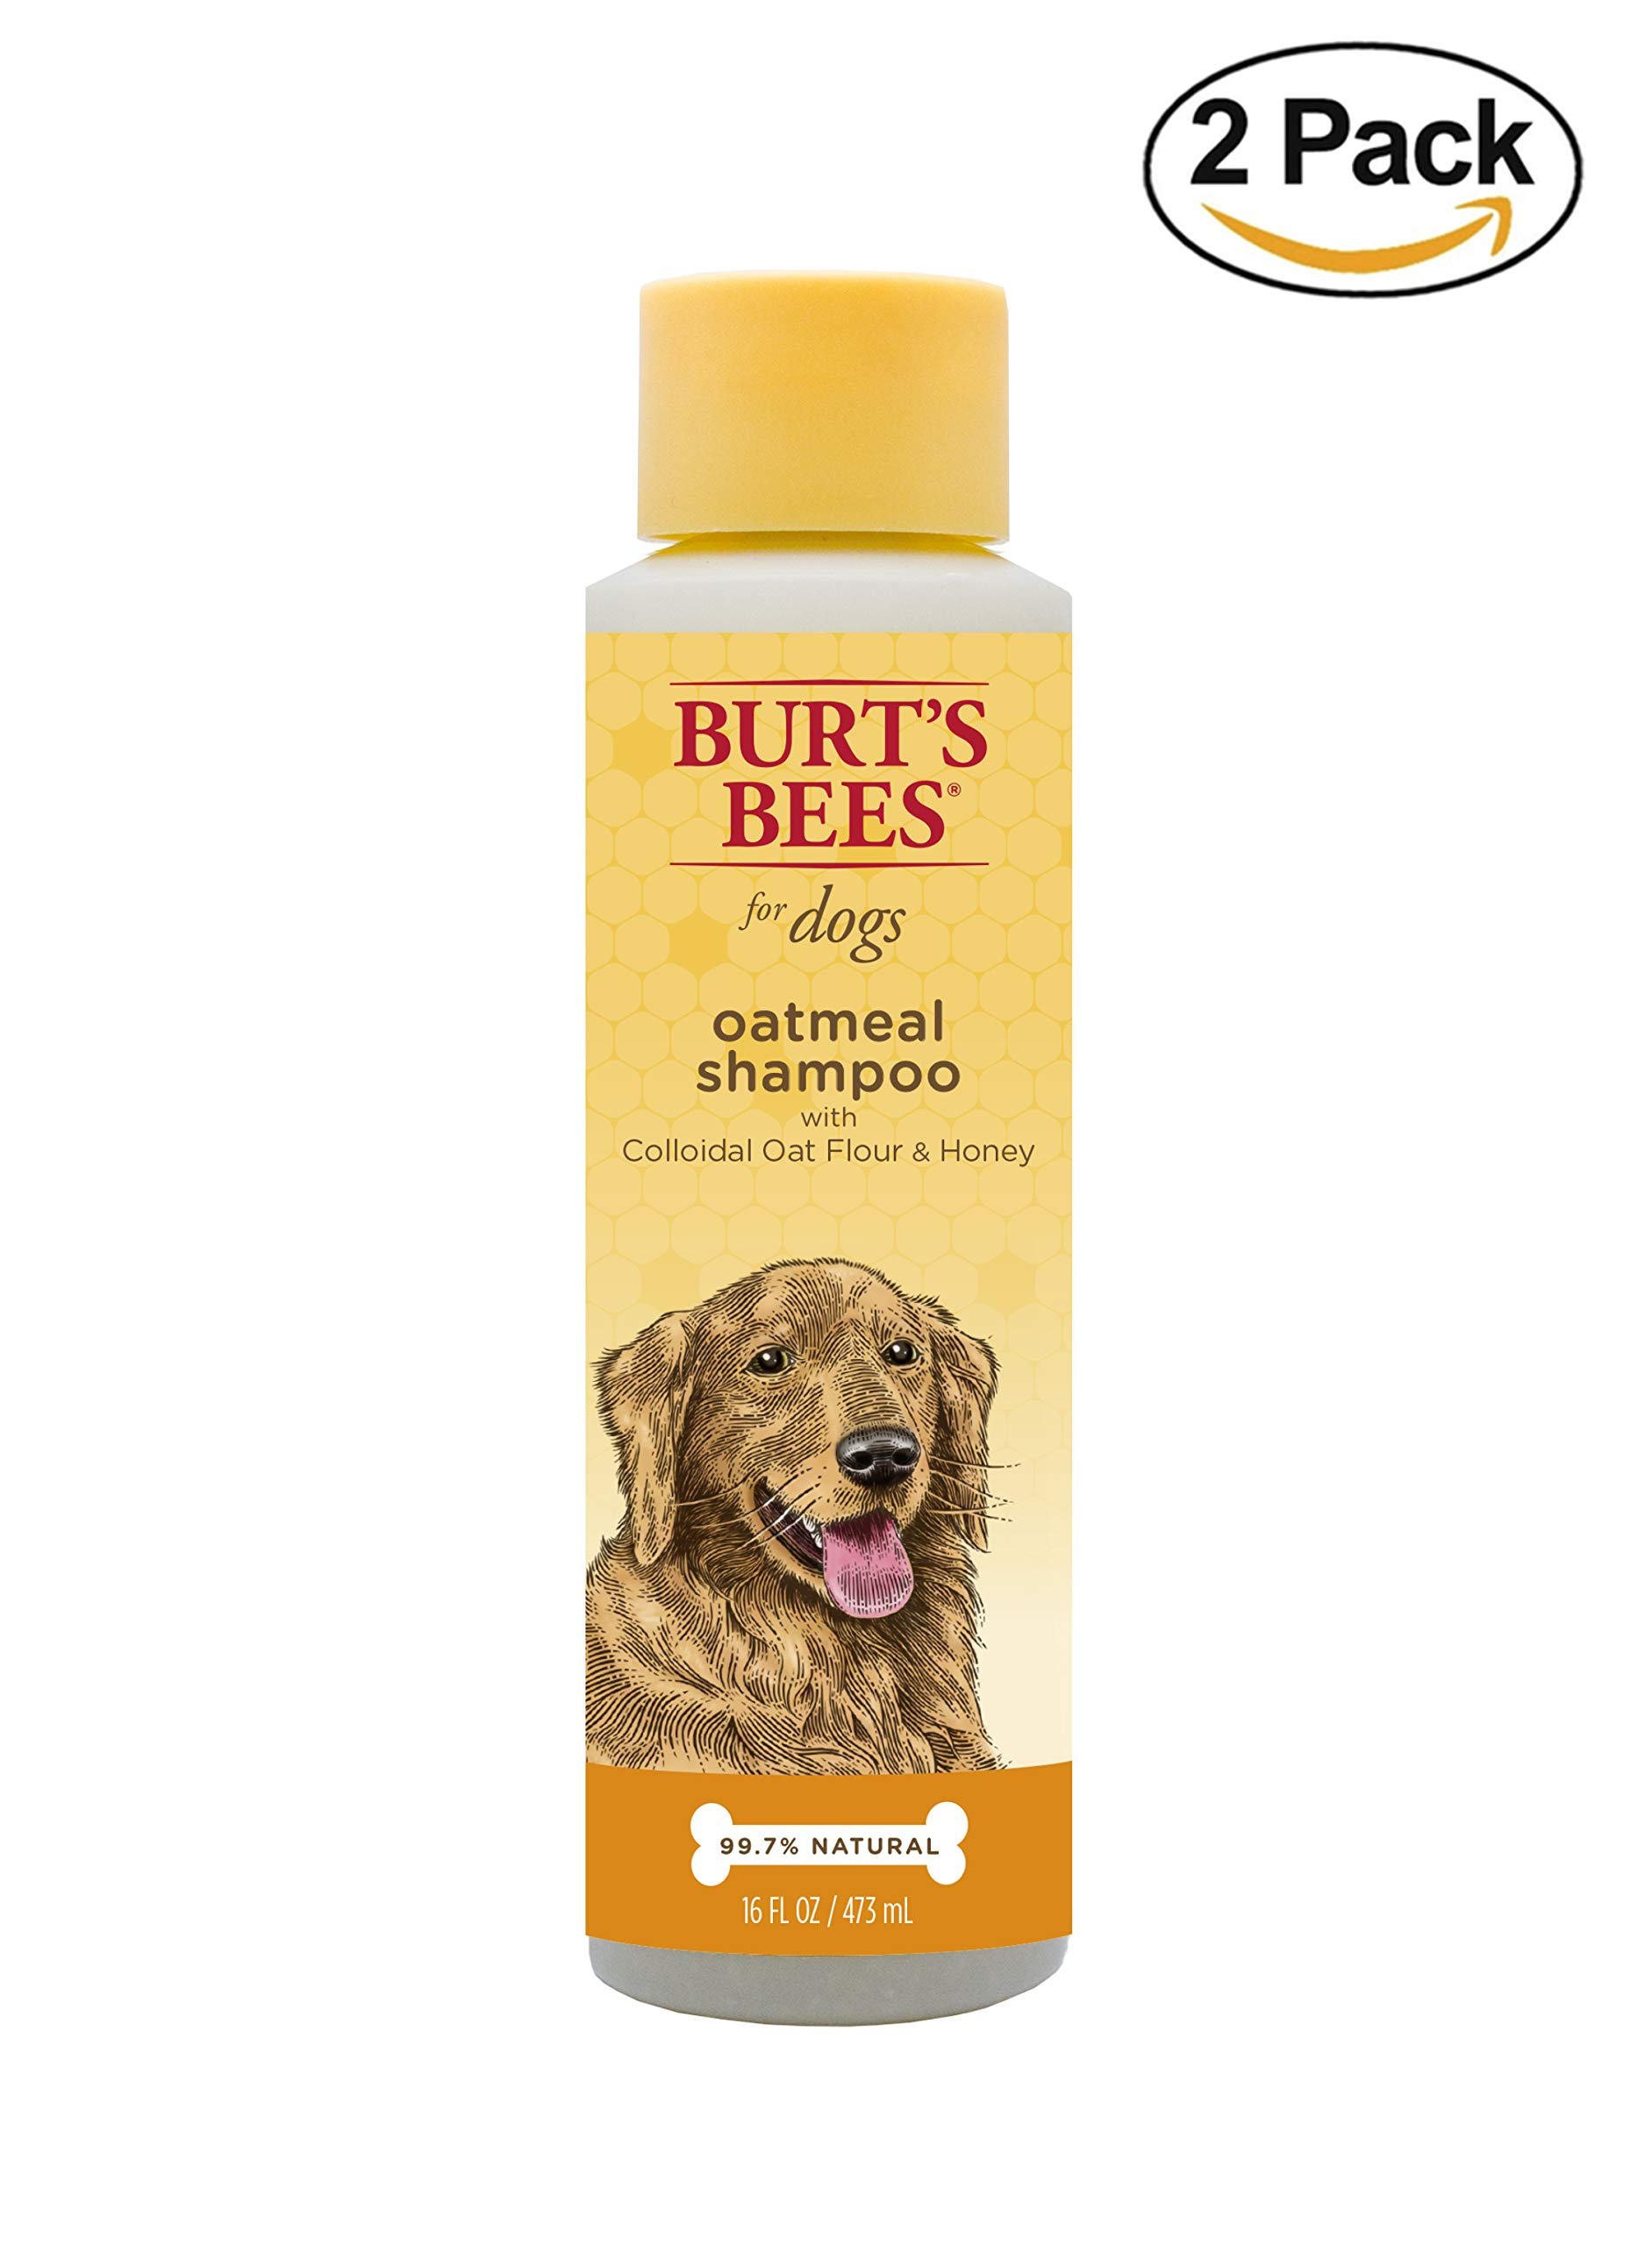 Burt's Bees All Natural Oatmeal Shampoo for Dogs | Made with Colloidal Oat Flour and Honey | Moisturizing Oatmeal Dog Shampoo, 16 Ounces, Pack of 2